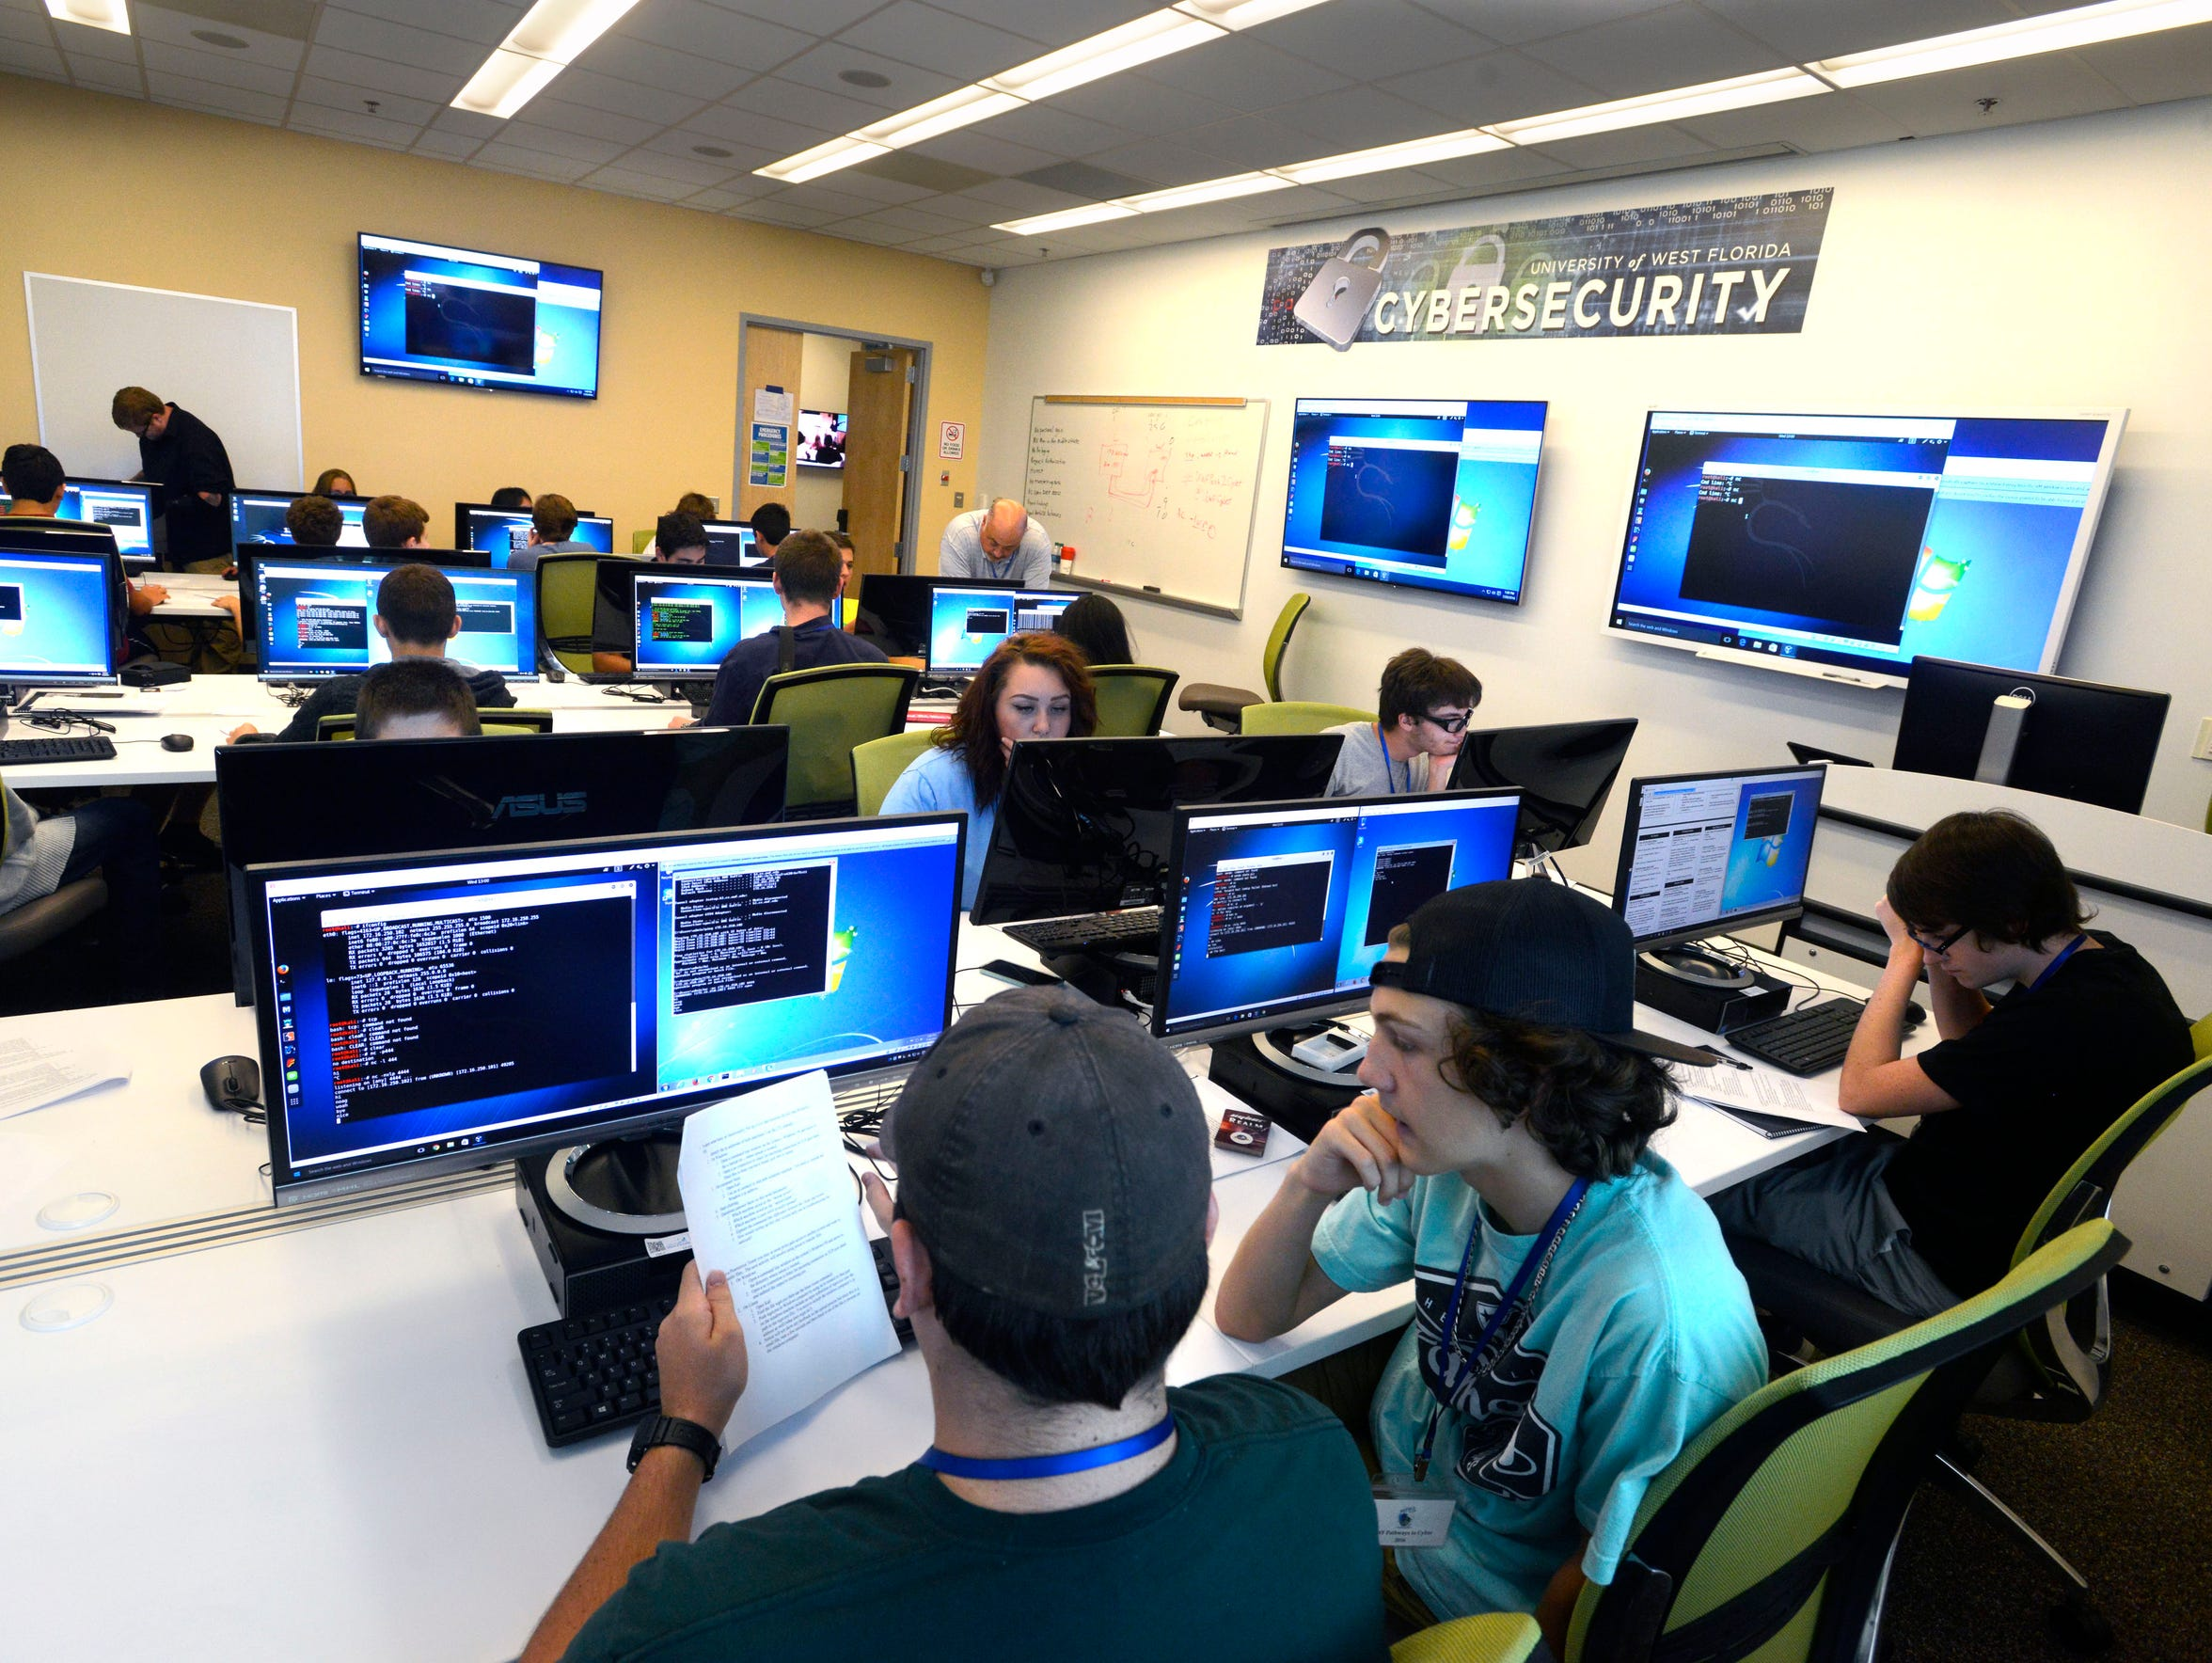 University of West Florida students at work in the